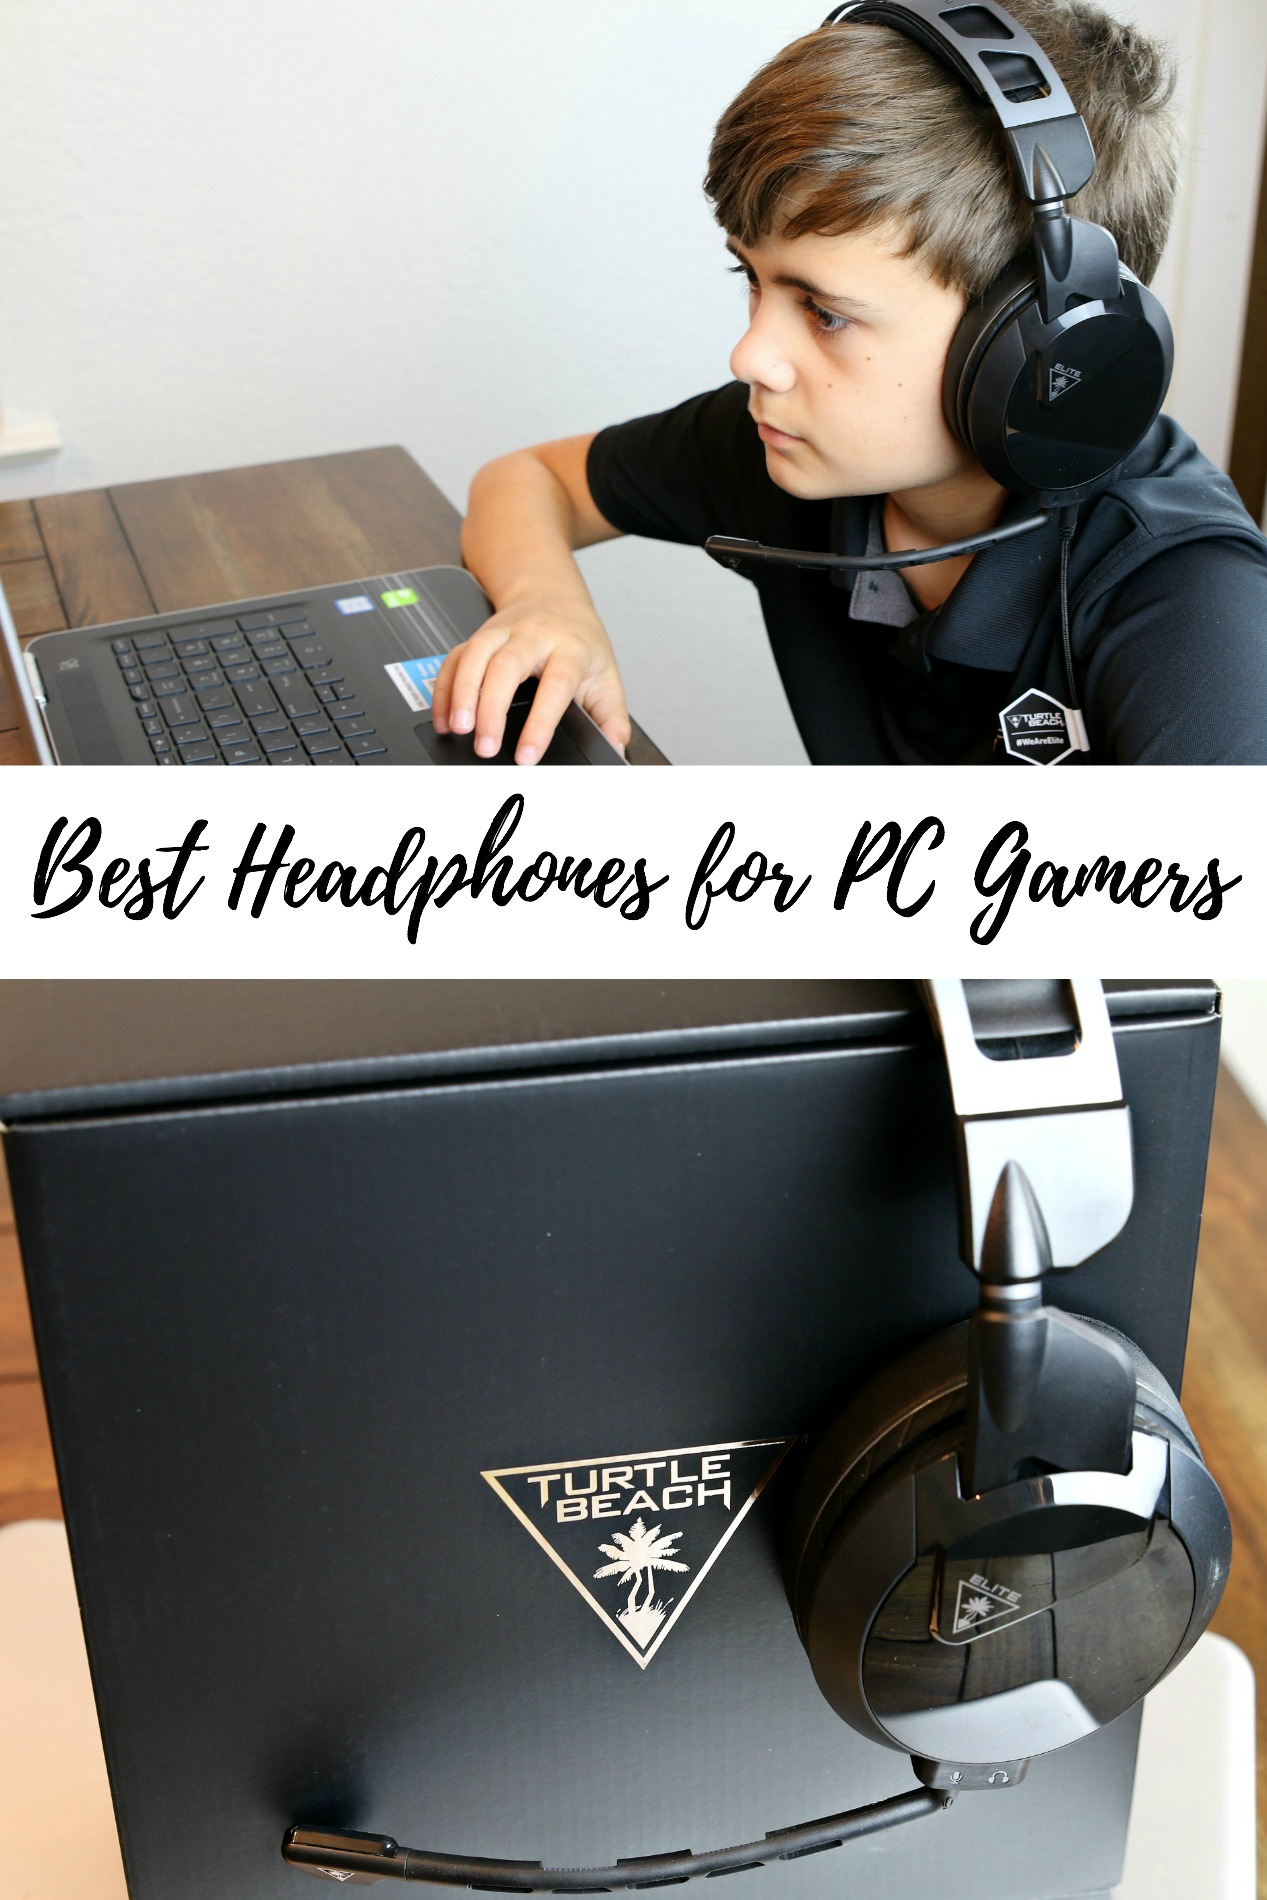 Best Headphones for PC Gamers